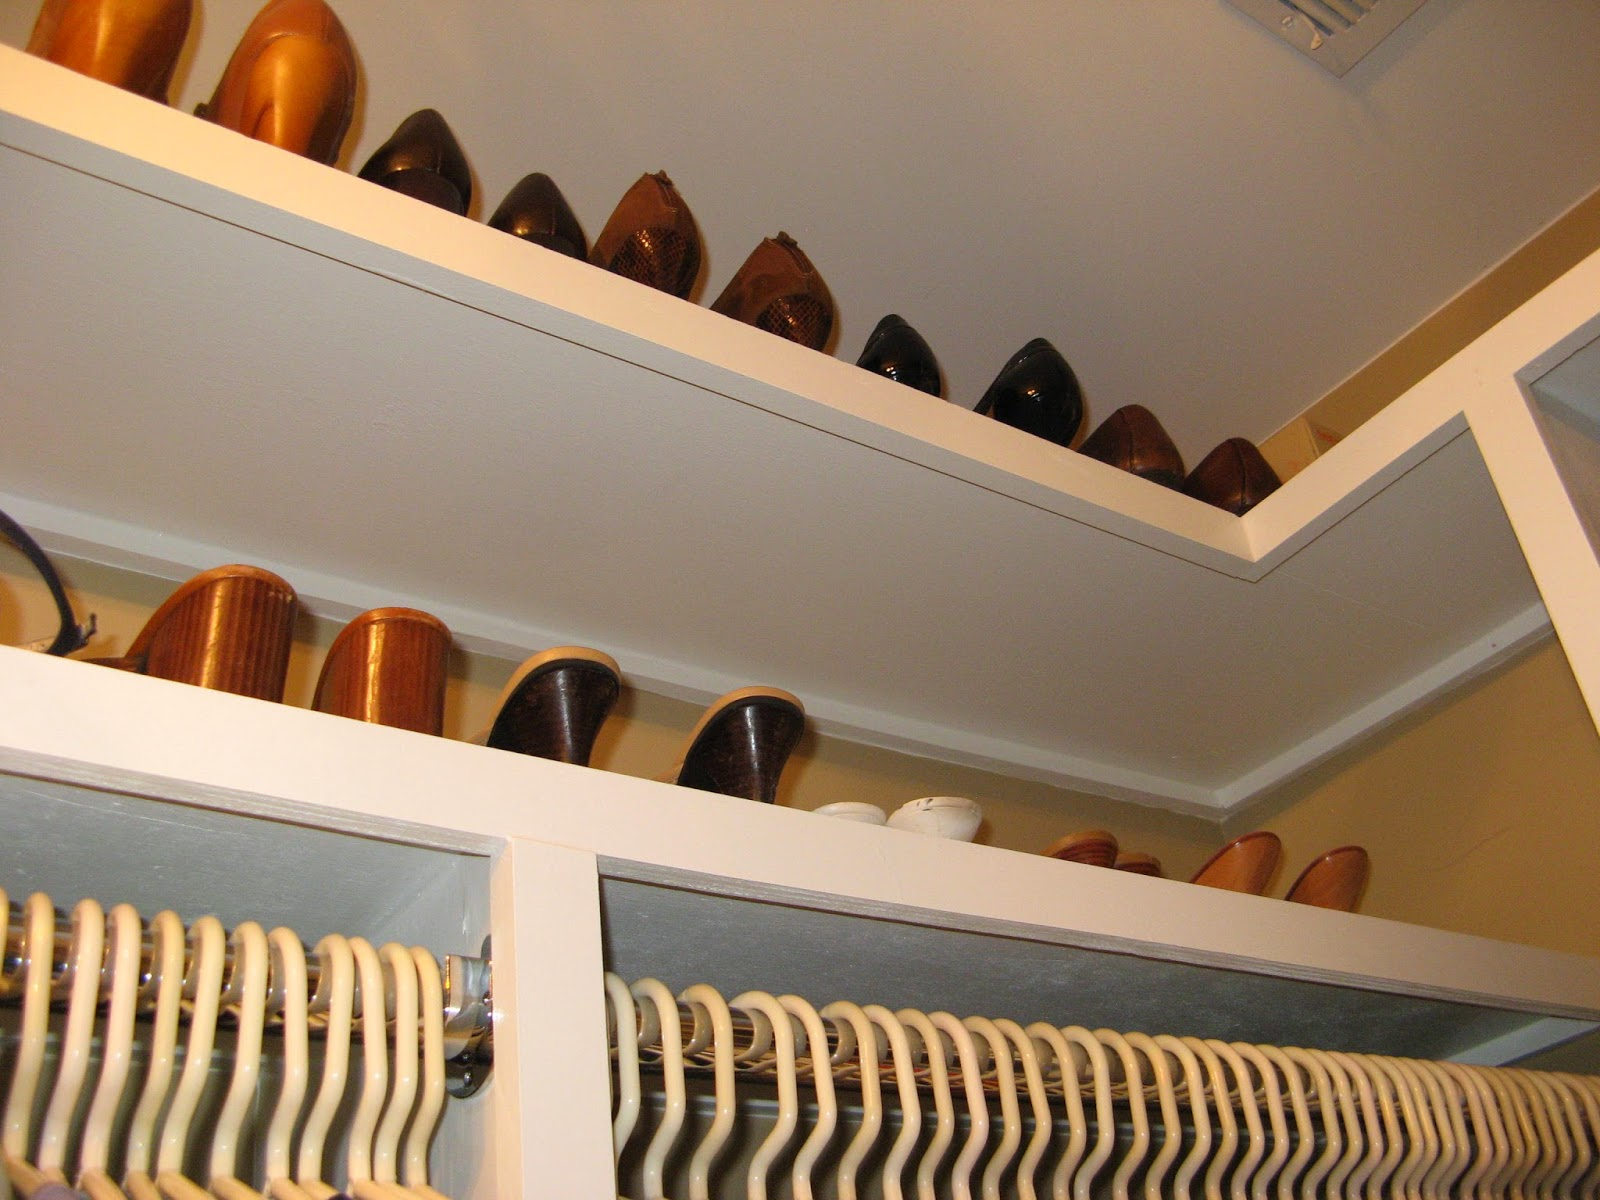 14 Closet Organizing Tips - EXTRA SHELVES